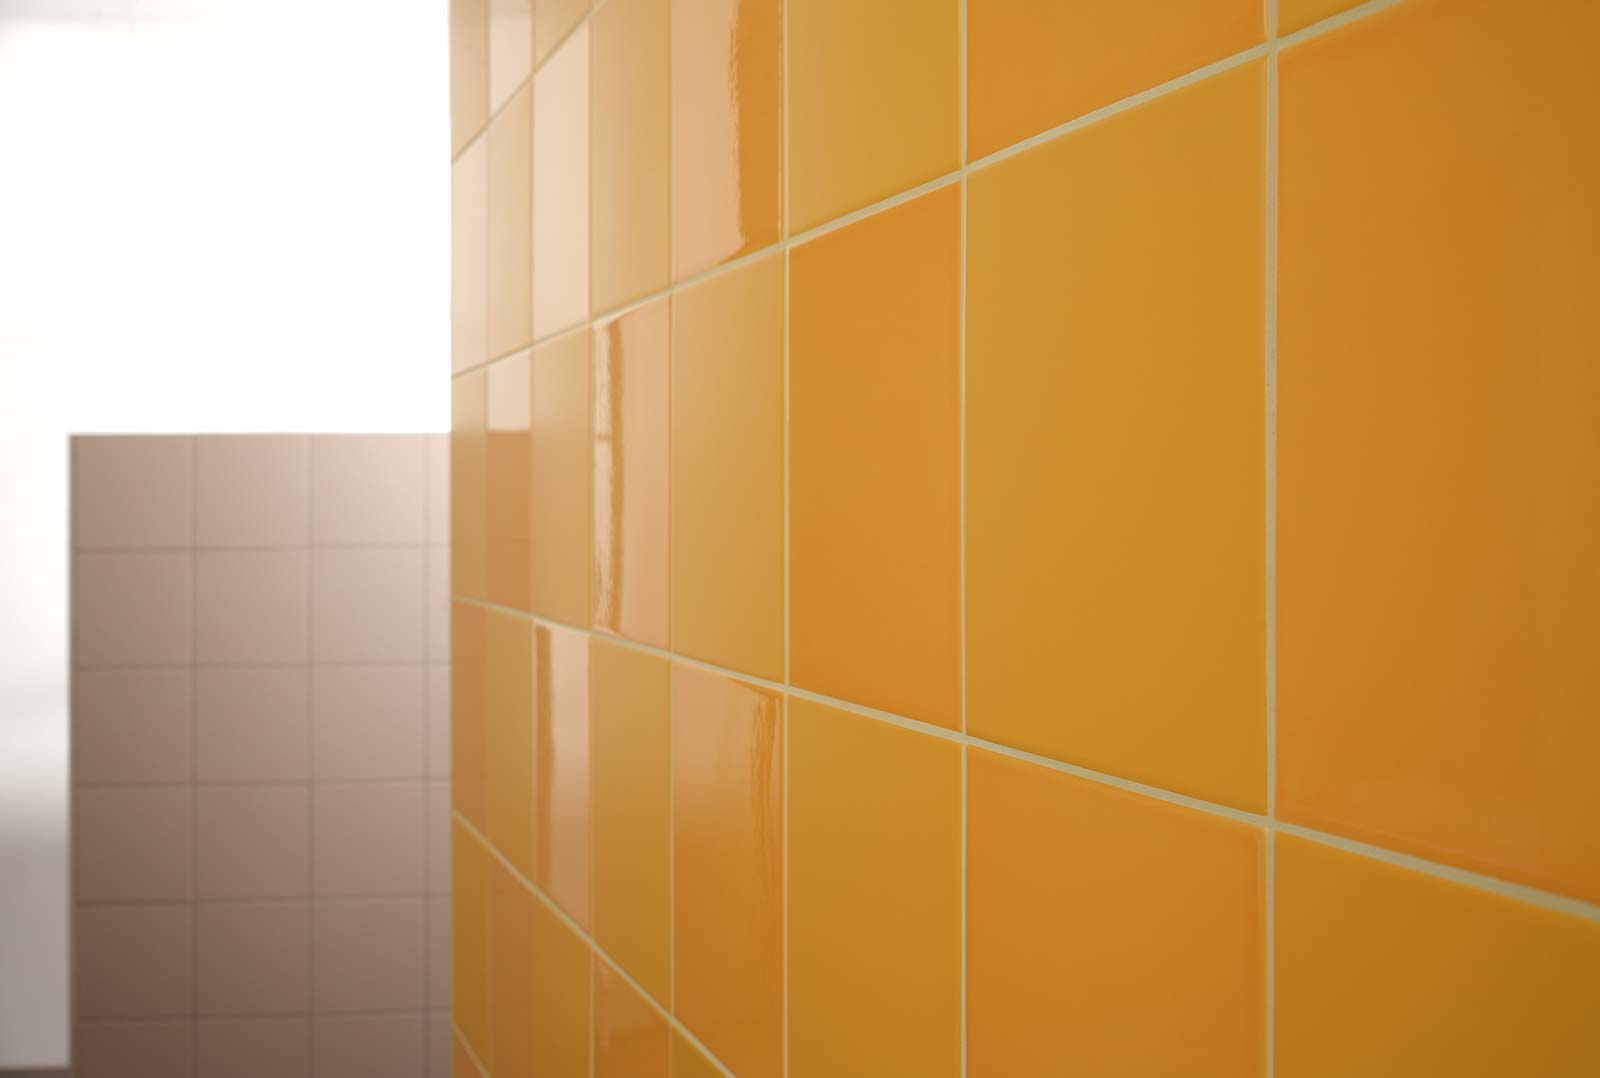 Sistemc architettura stoneware wall coverings marazzi sistemc architettura ceramic tiles marazzi8034 dailygadgetfo Image collections